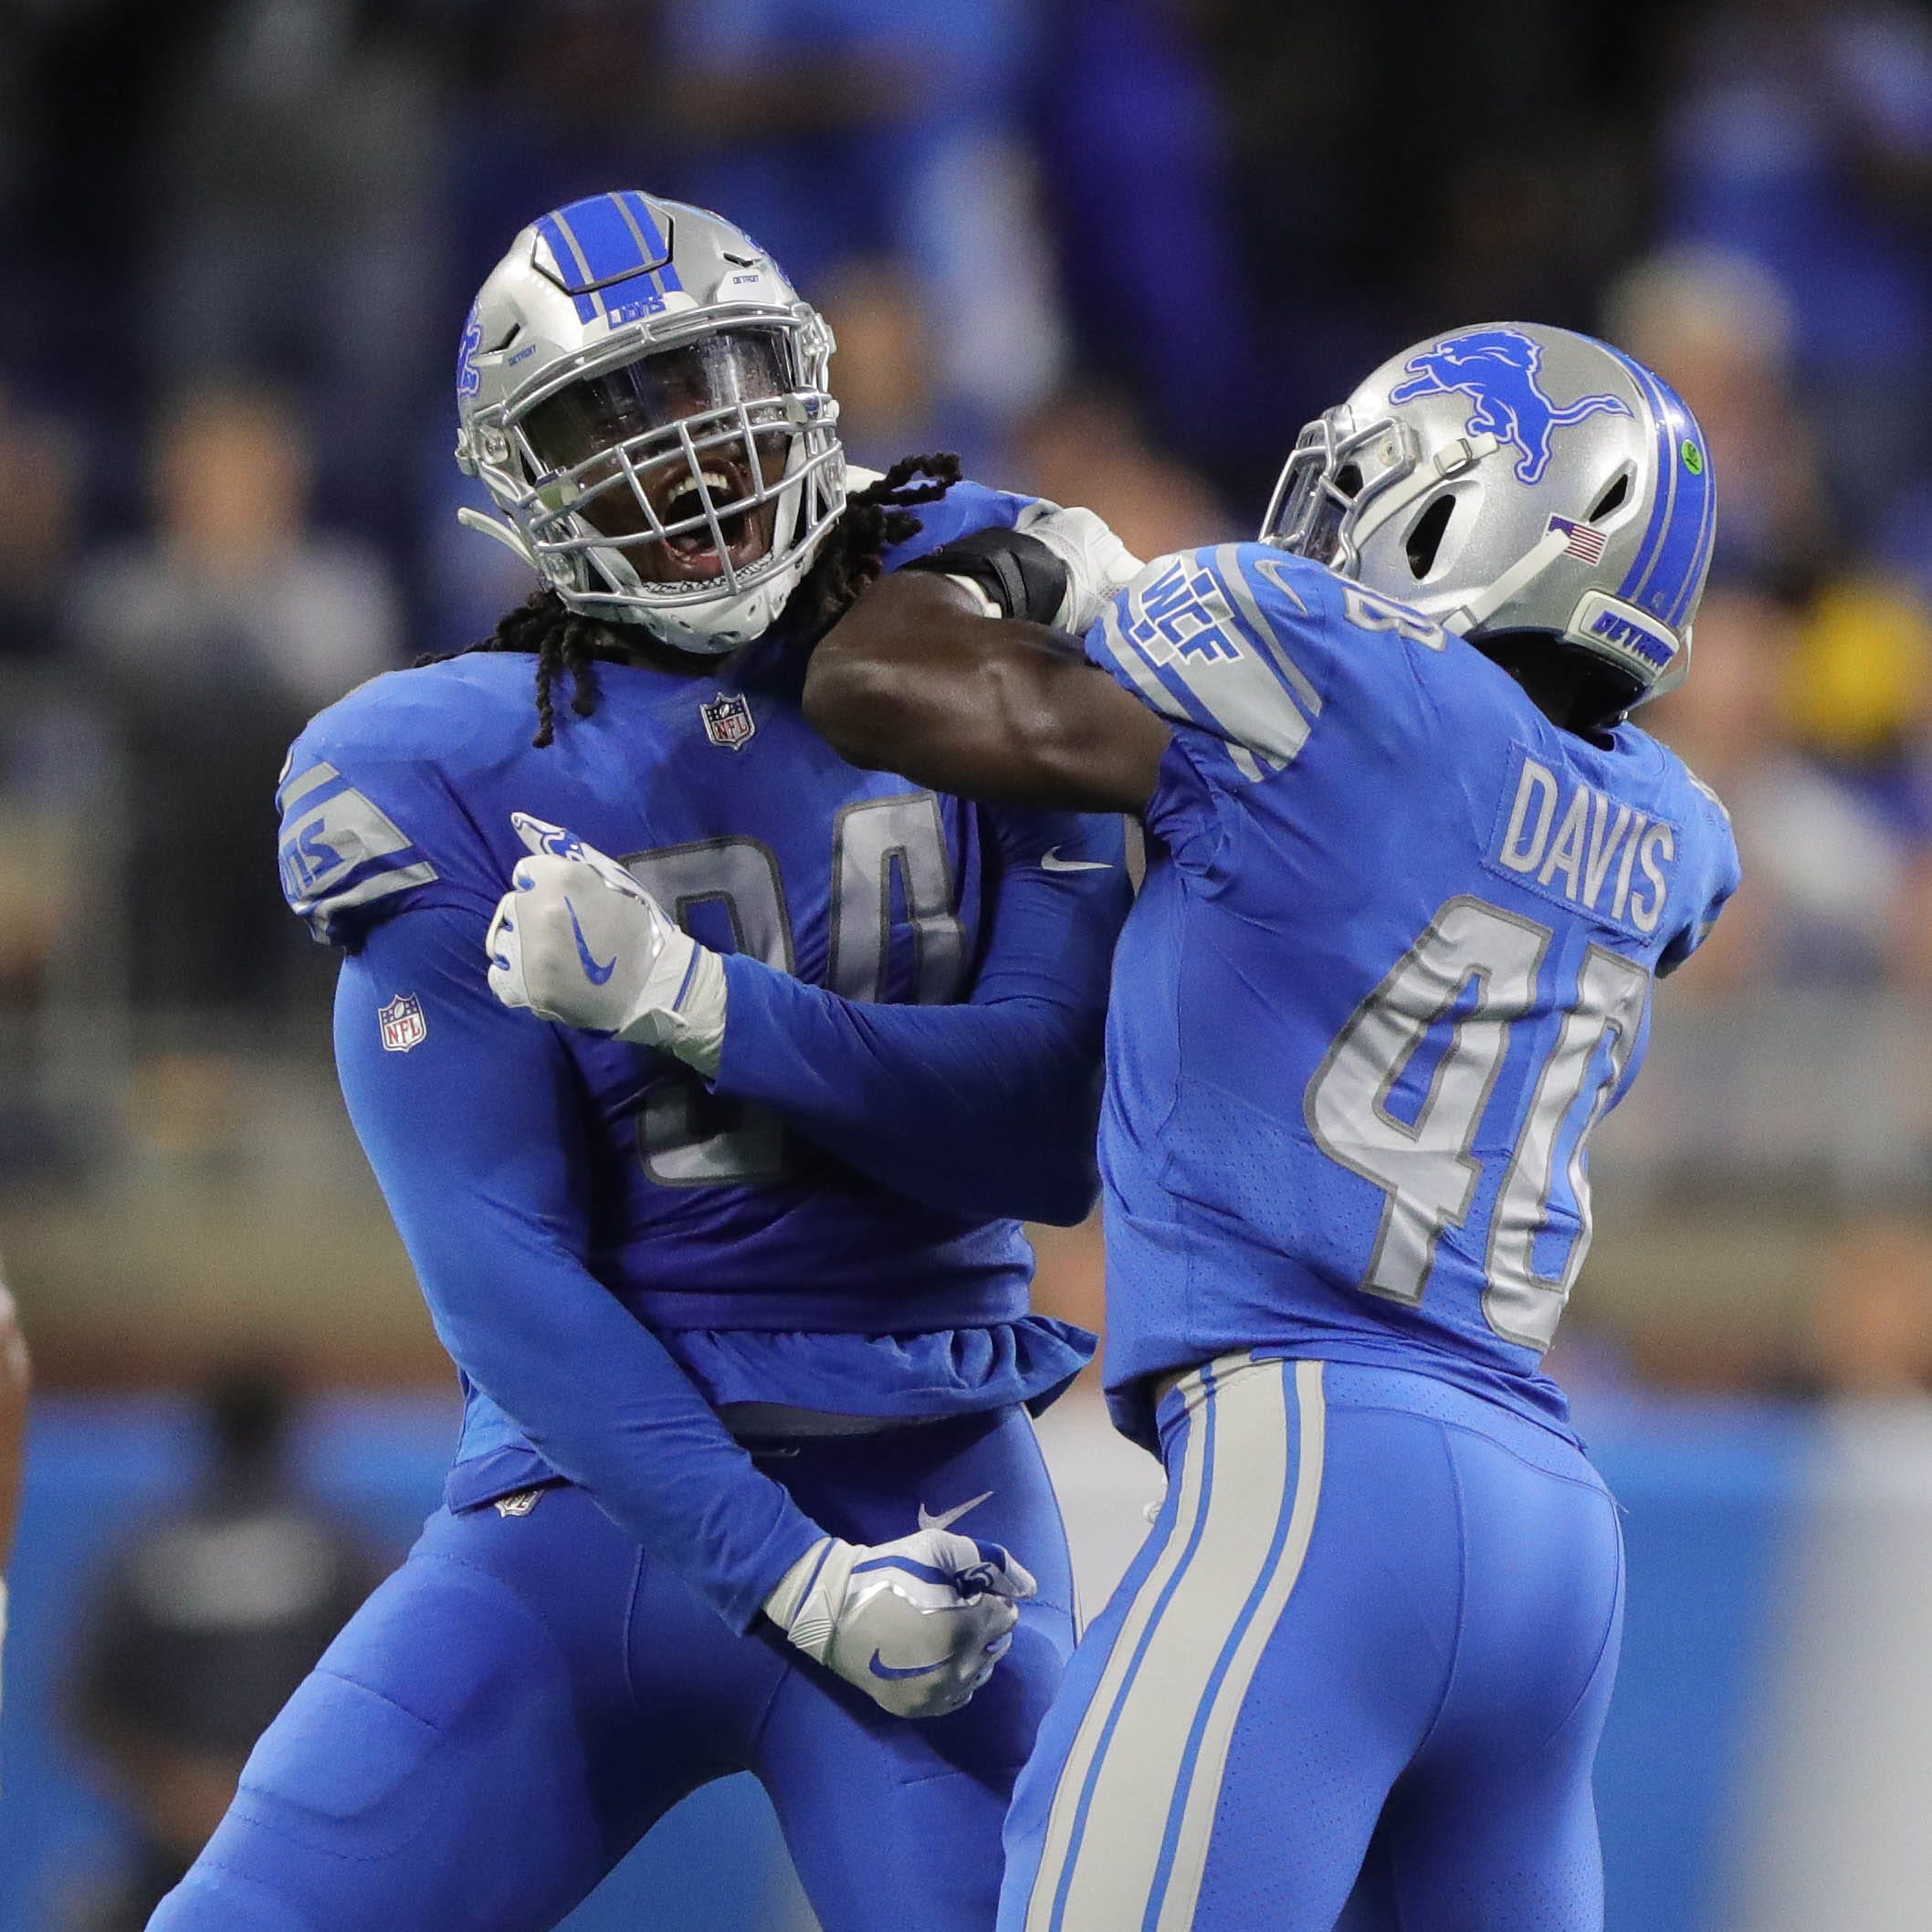 Detroit Lions mailbag: Time has come for team, Ziggy Ansah to part ways